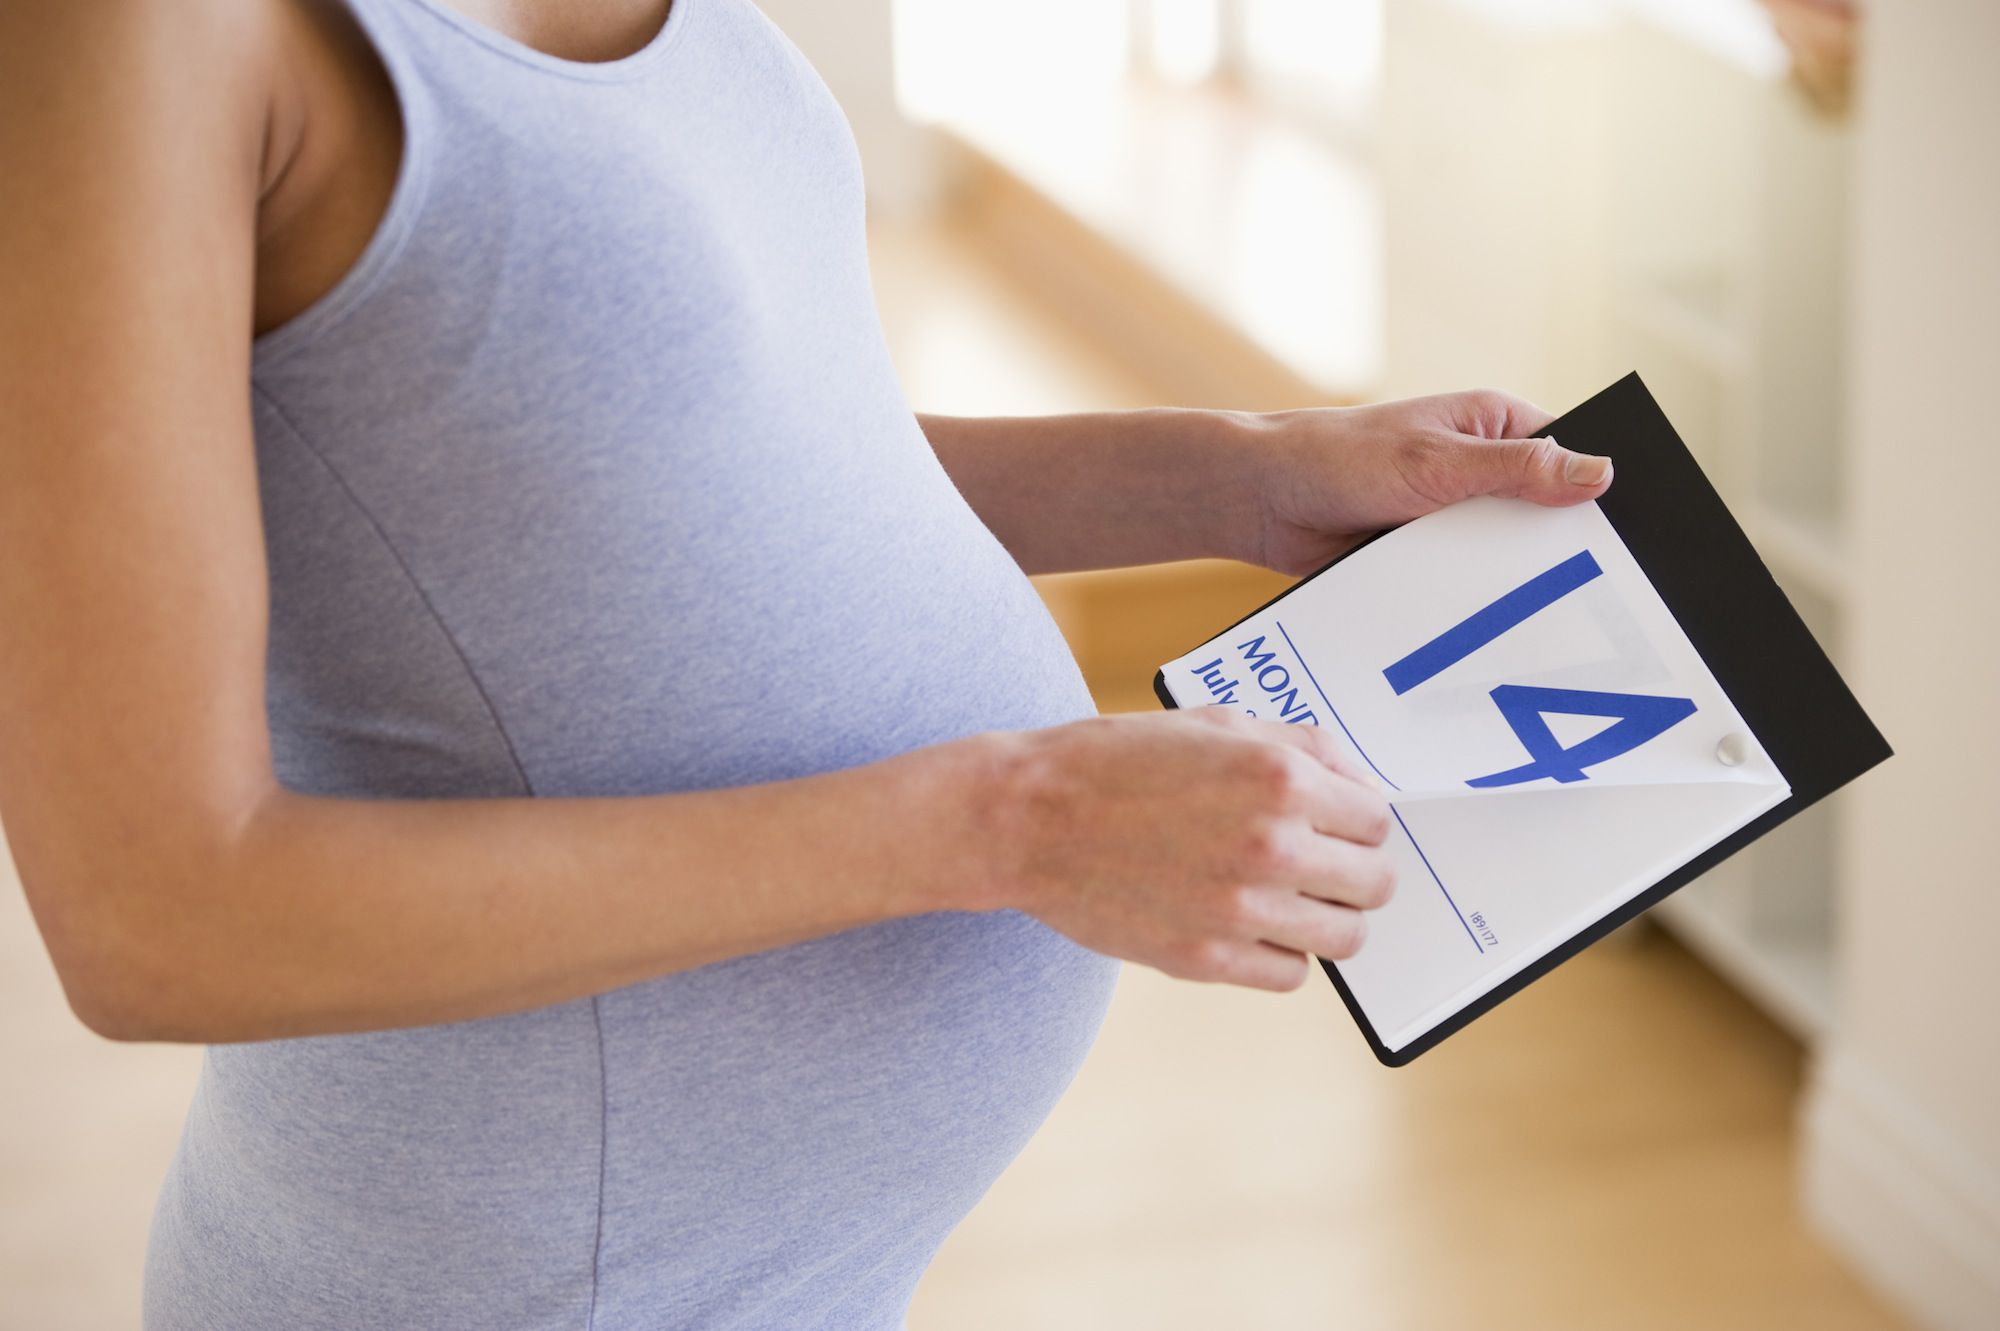 8 rule for pregnancy dating Pregnancy coding: understanding the differences between icd-9-cm and icd-10-cm justcoding news: outpatient, july 25, 2012 want to receive articles like this one in.